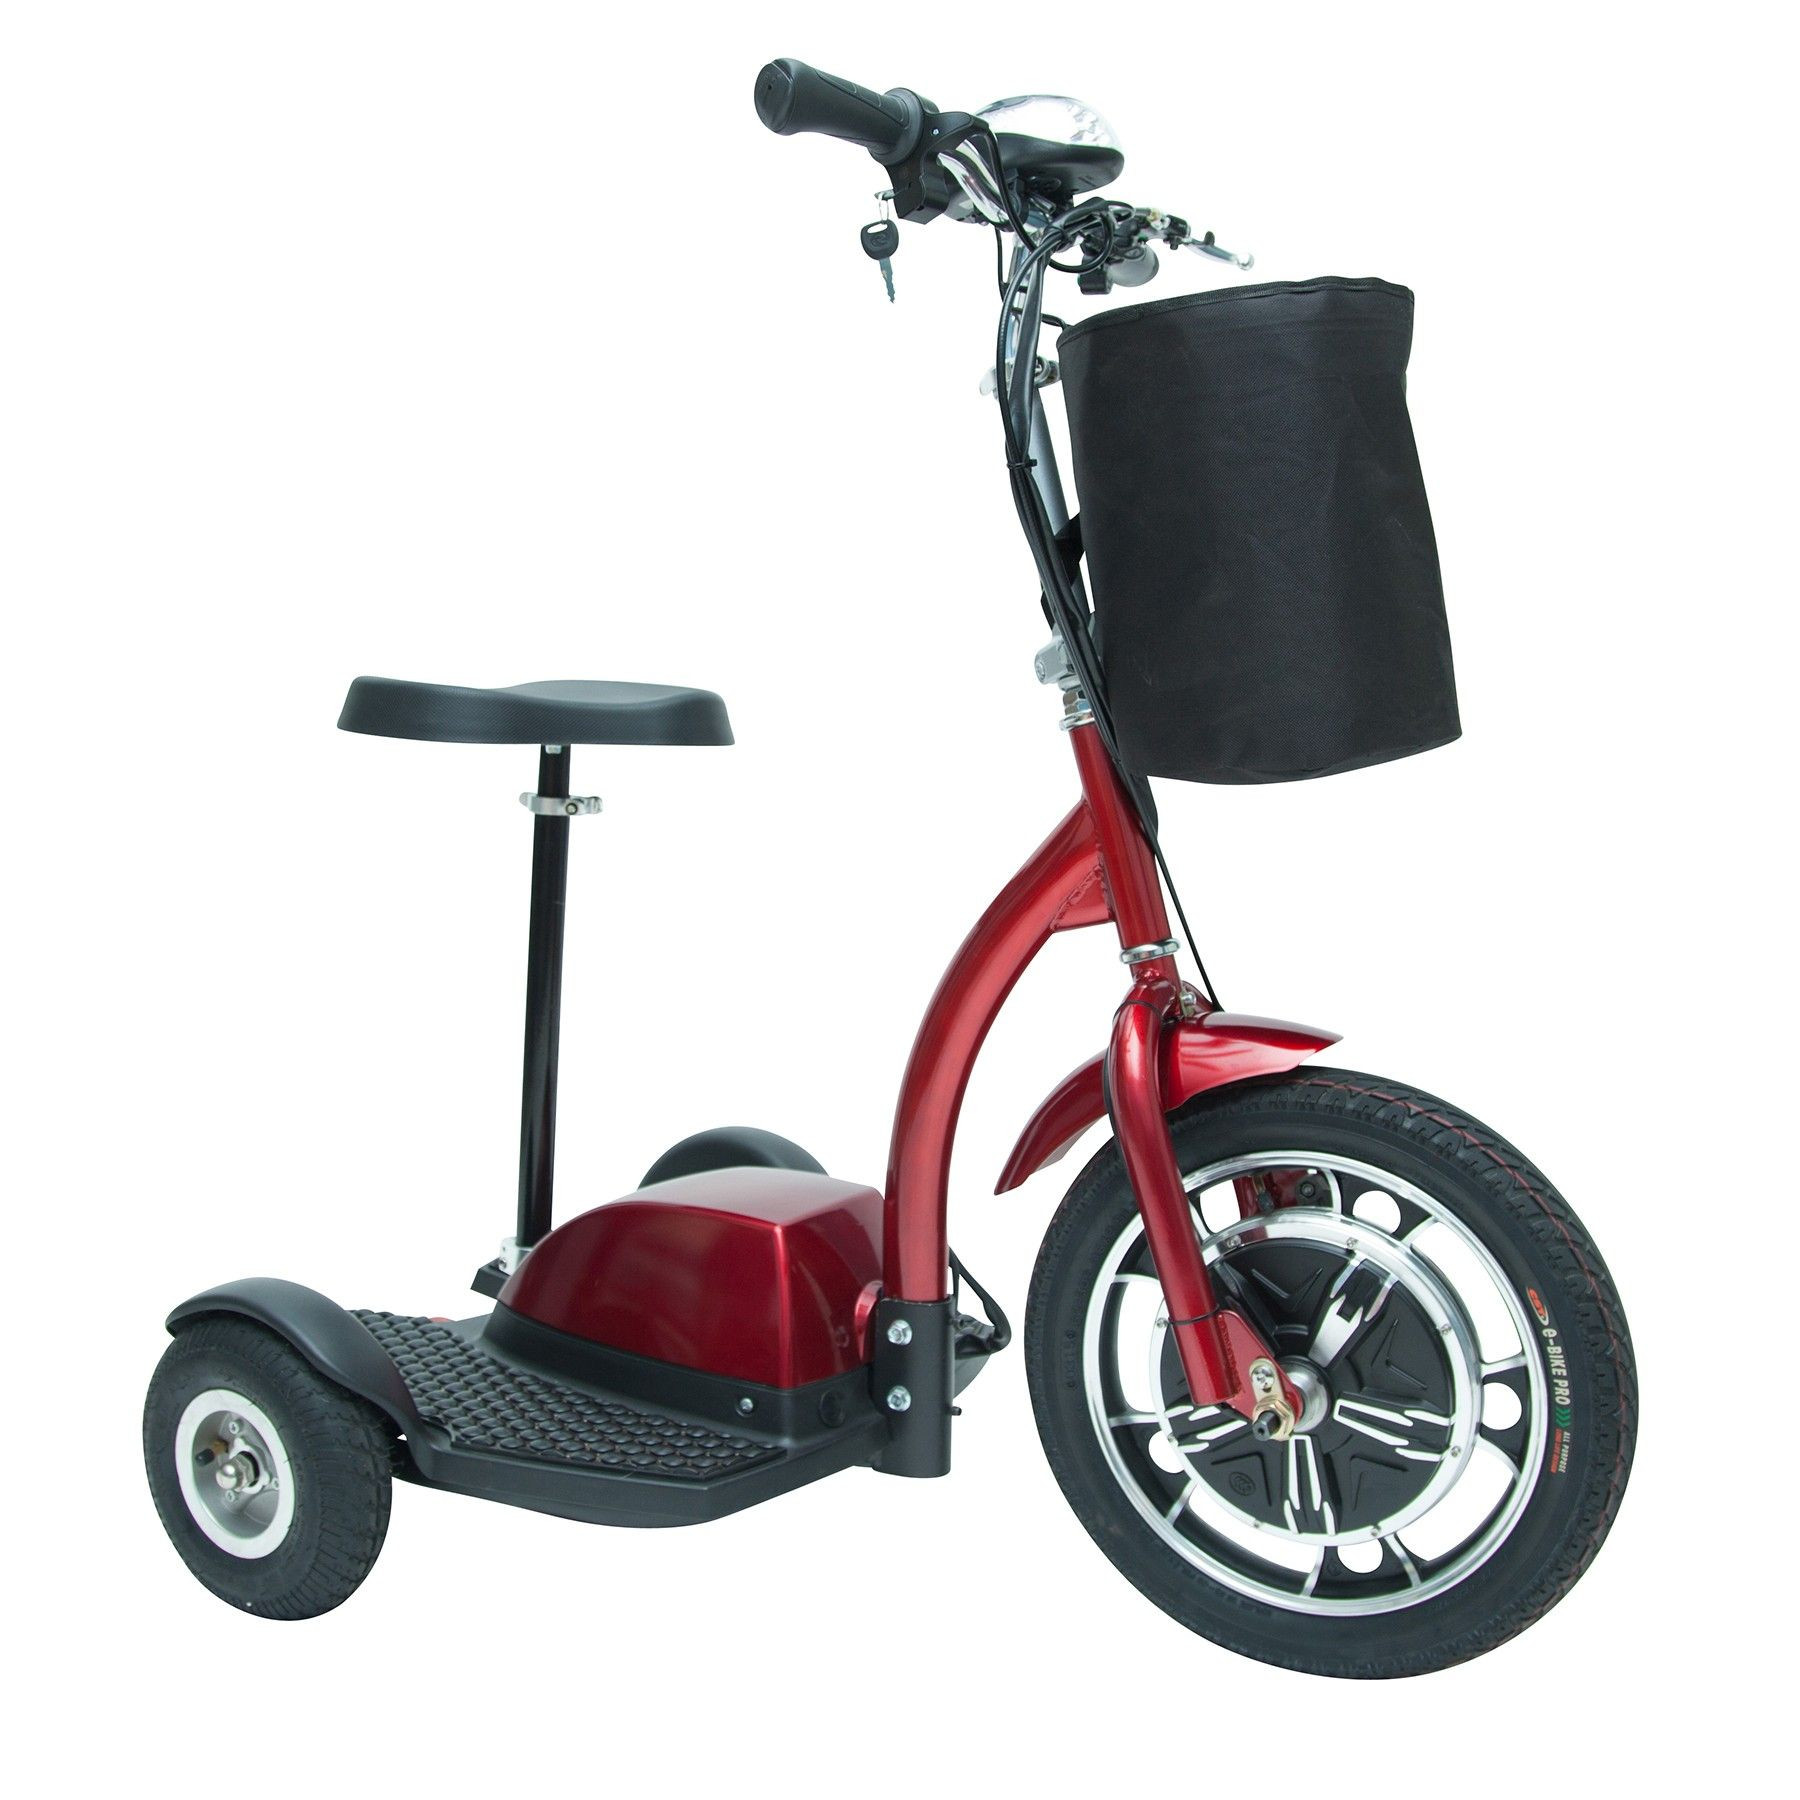 Drive ZooMe Flex 3-Wheel Recreational Scooter For Sale